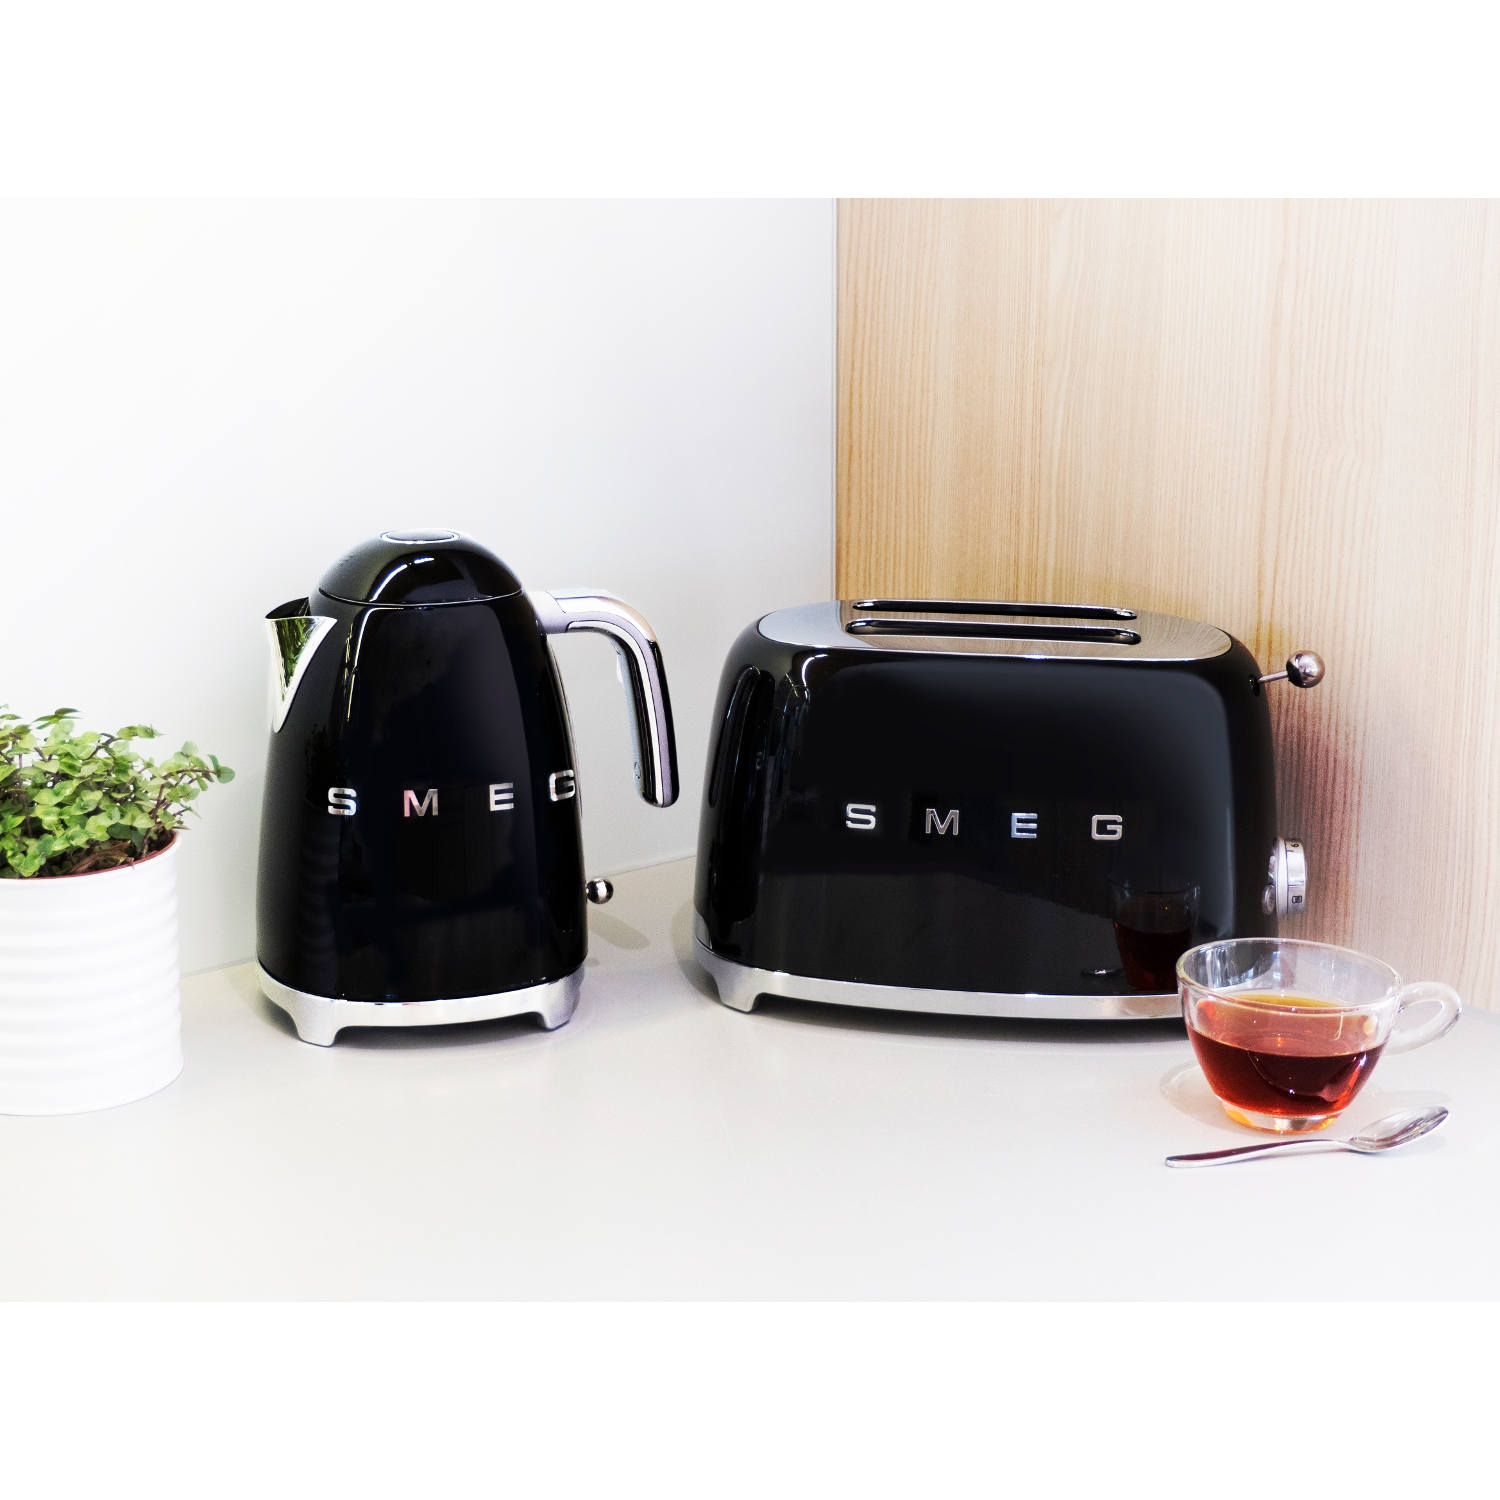 smeg tsf01bluk 2 slice toaster black herne bay domestics ltd. Black Bedroom Furniture Sets. Home Design Ideas